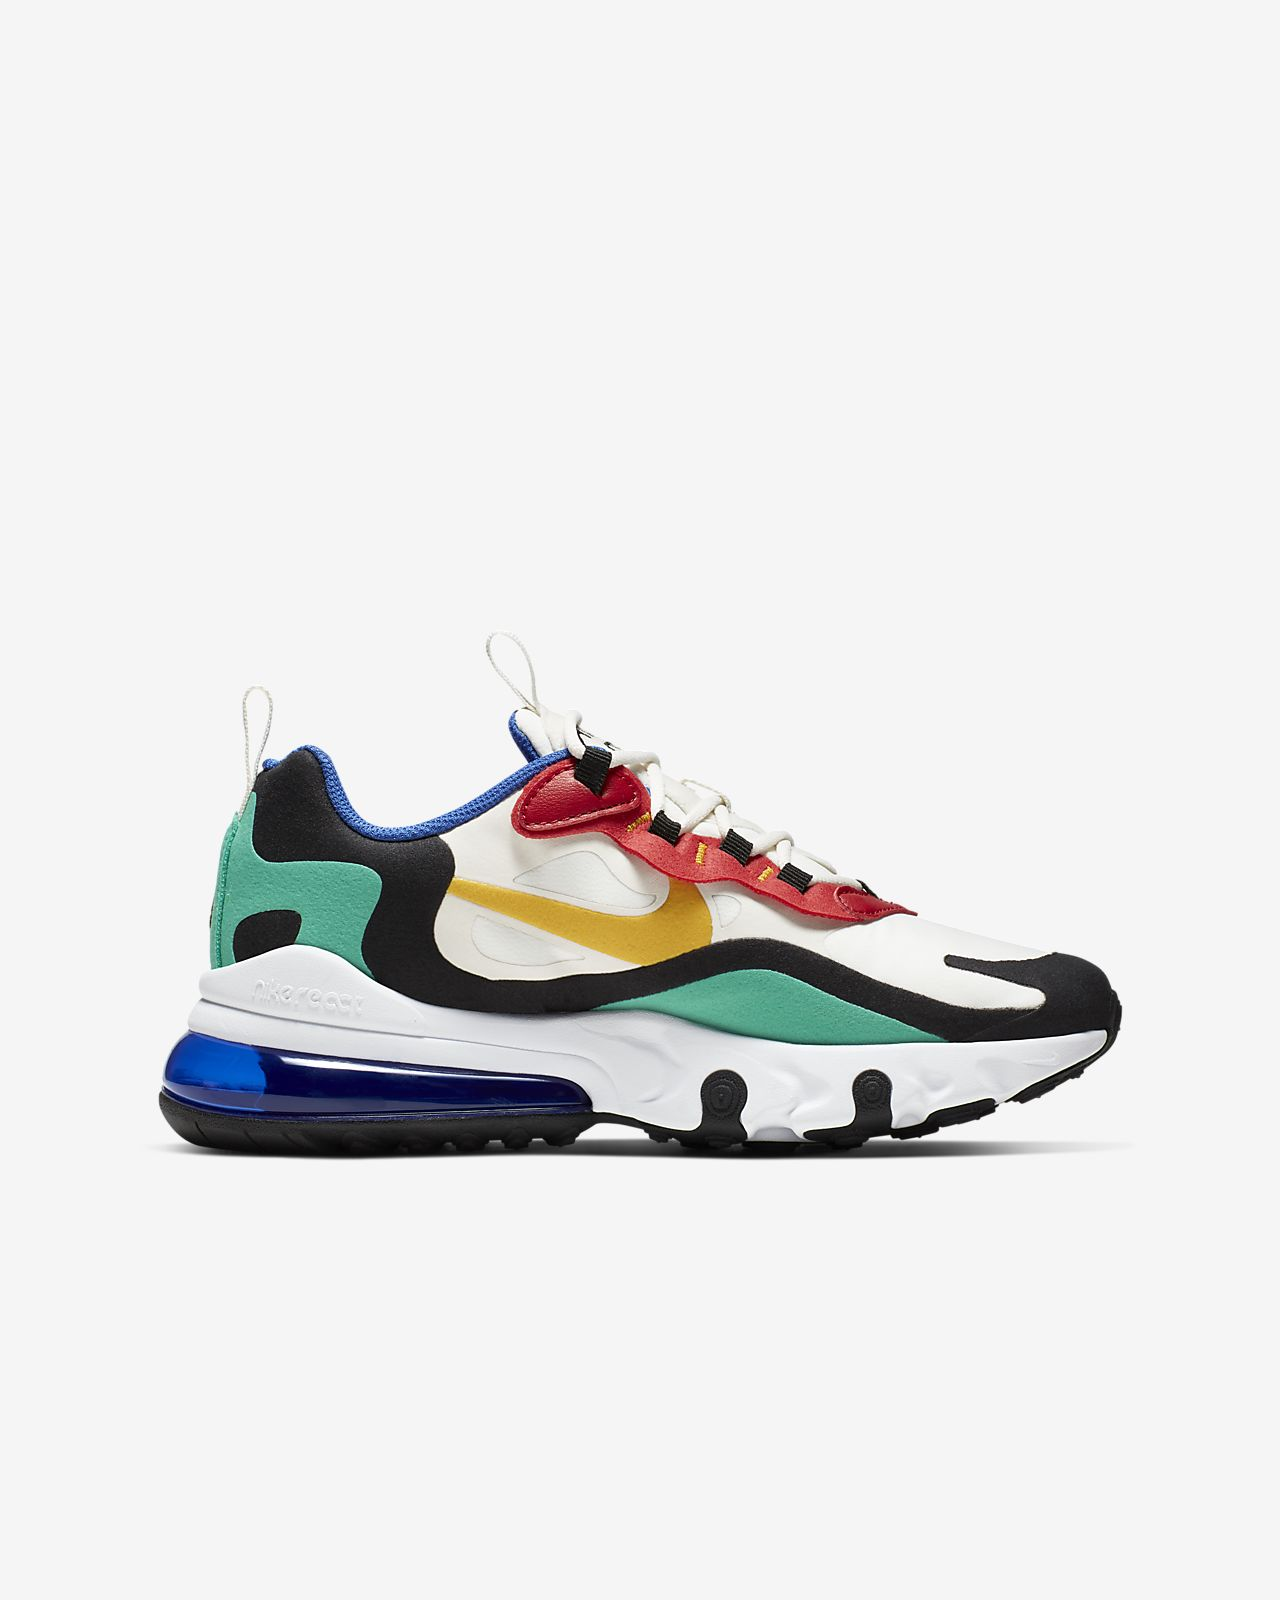 Nike Air Max 270 React White Black Blue Red Kids' Running Shoes